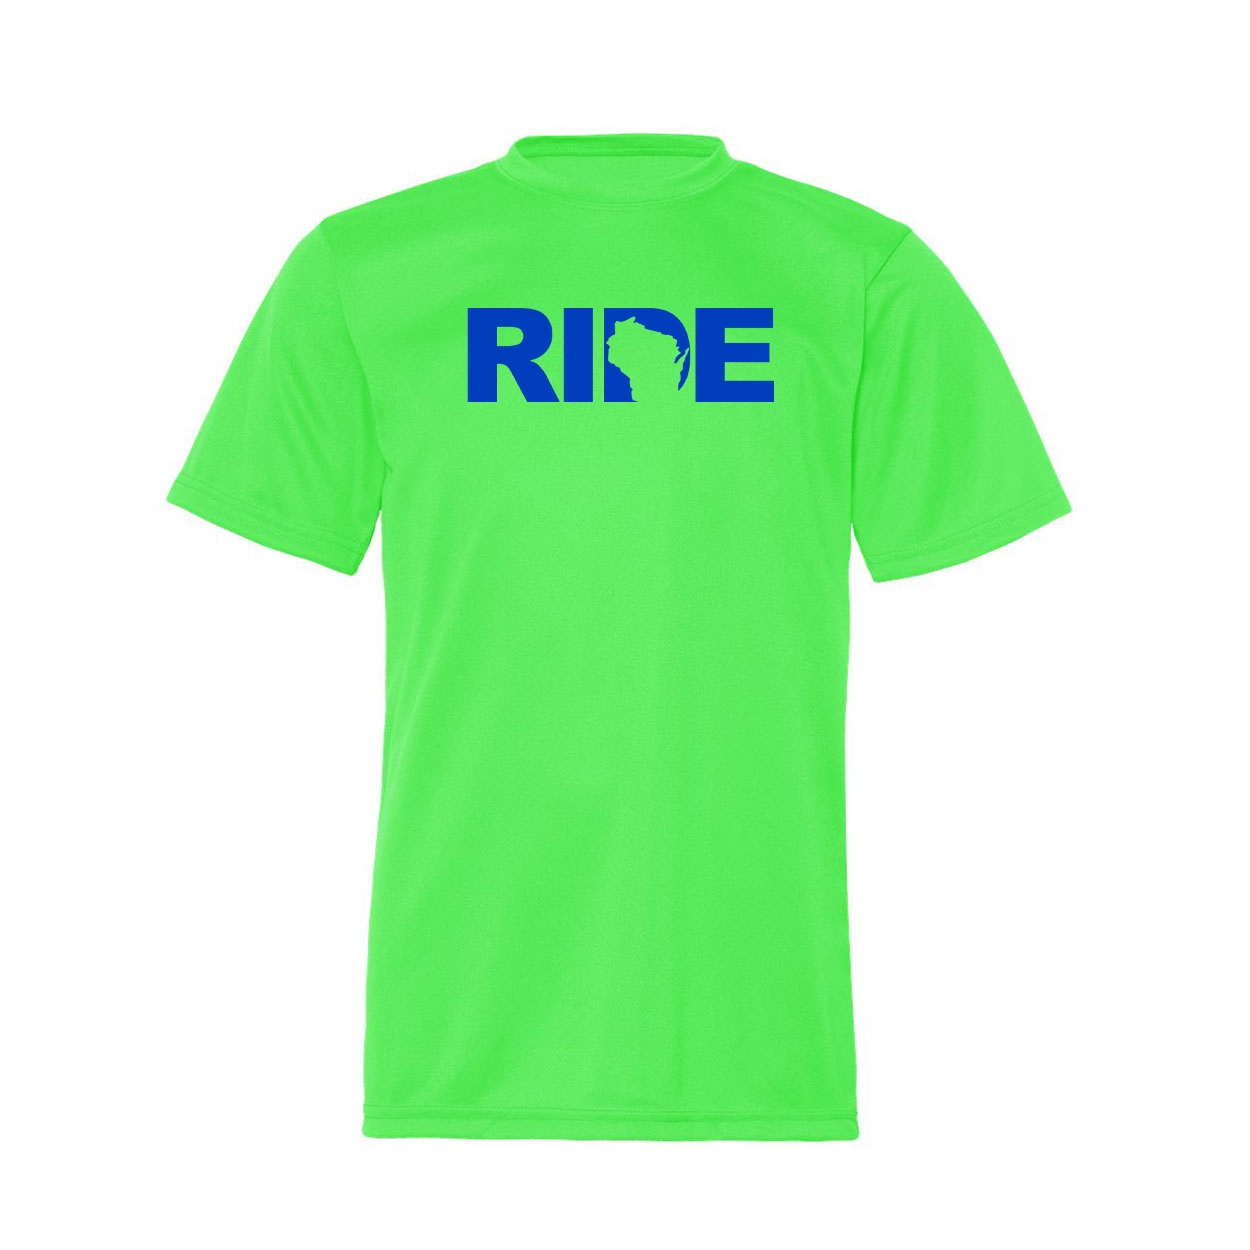 Ride Wisconsin Classic Youth Unisex Performance T-Shirt Lime Green (Blue Logo)